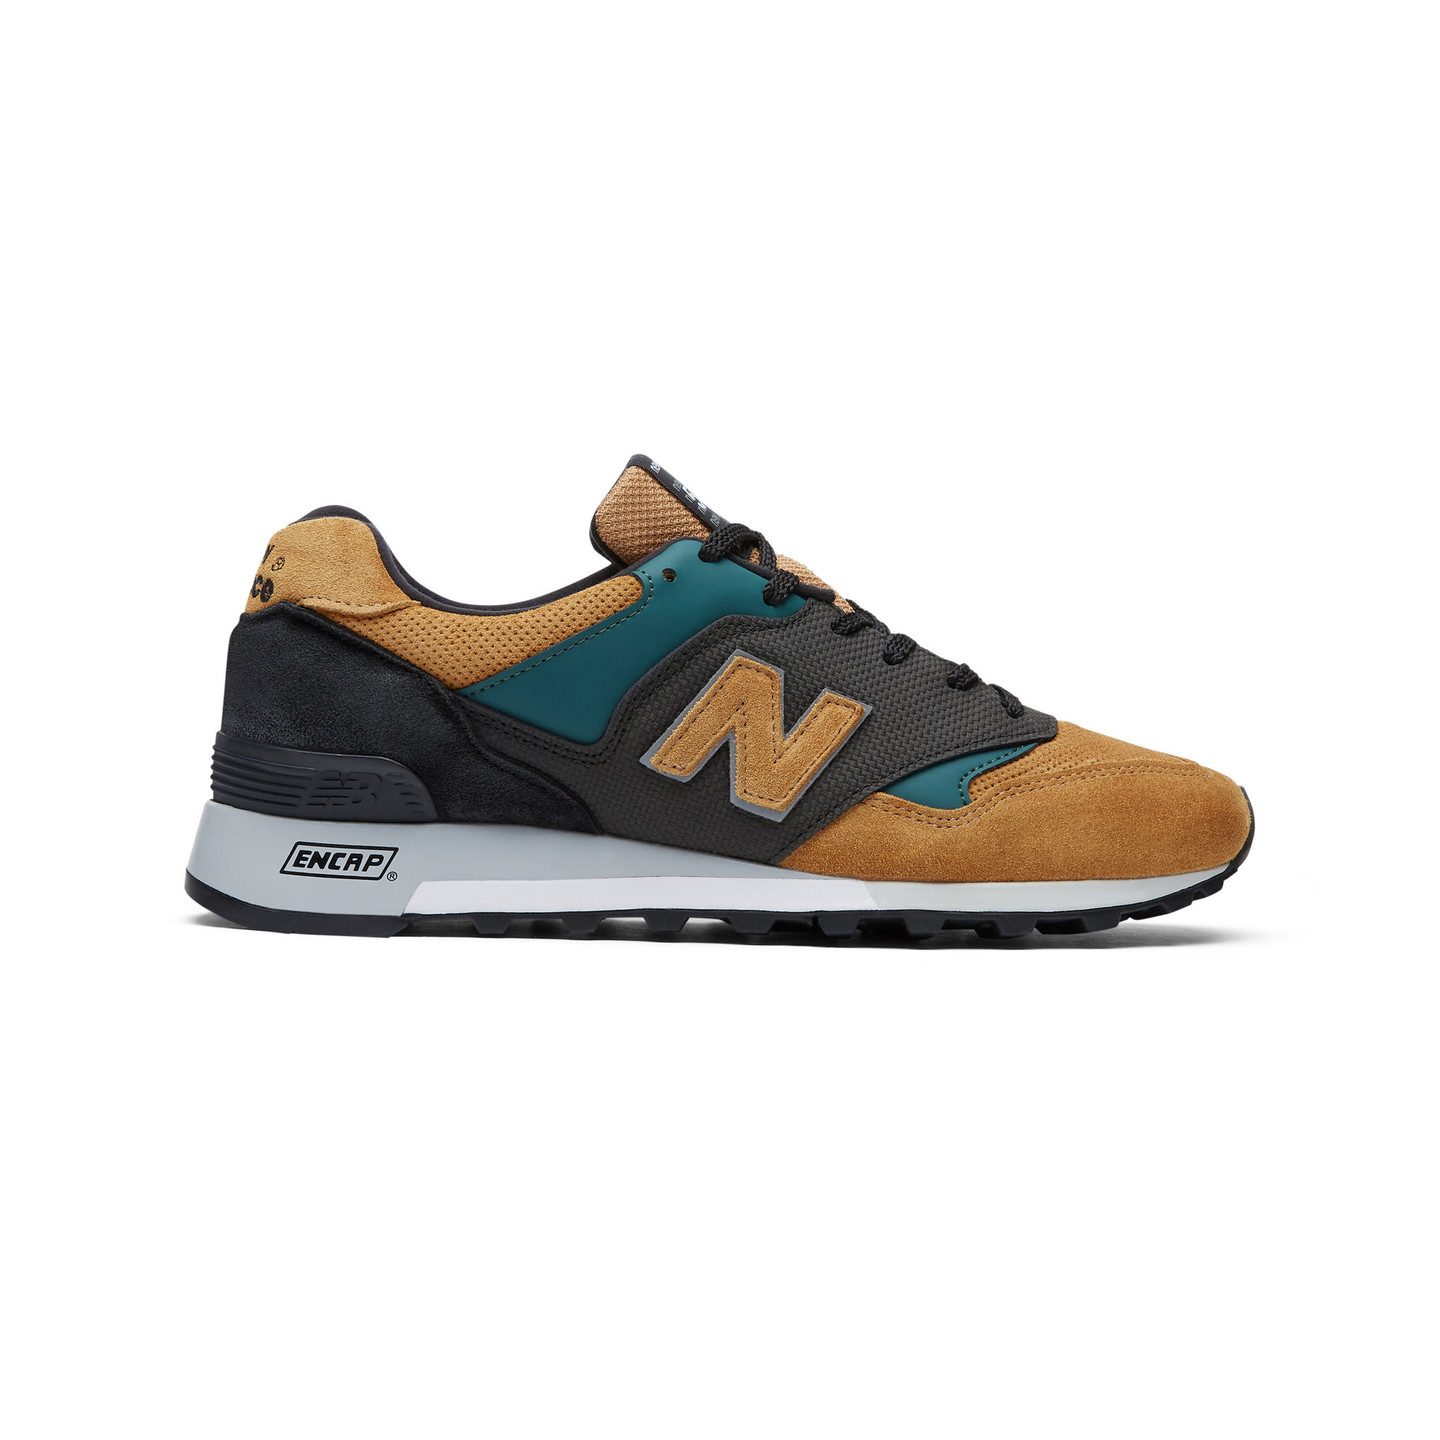 New Balance M577 TGK - Made in England Tan / Petrol / Black M577TGK